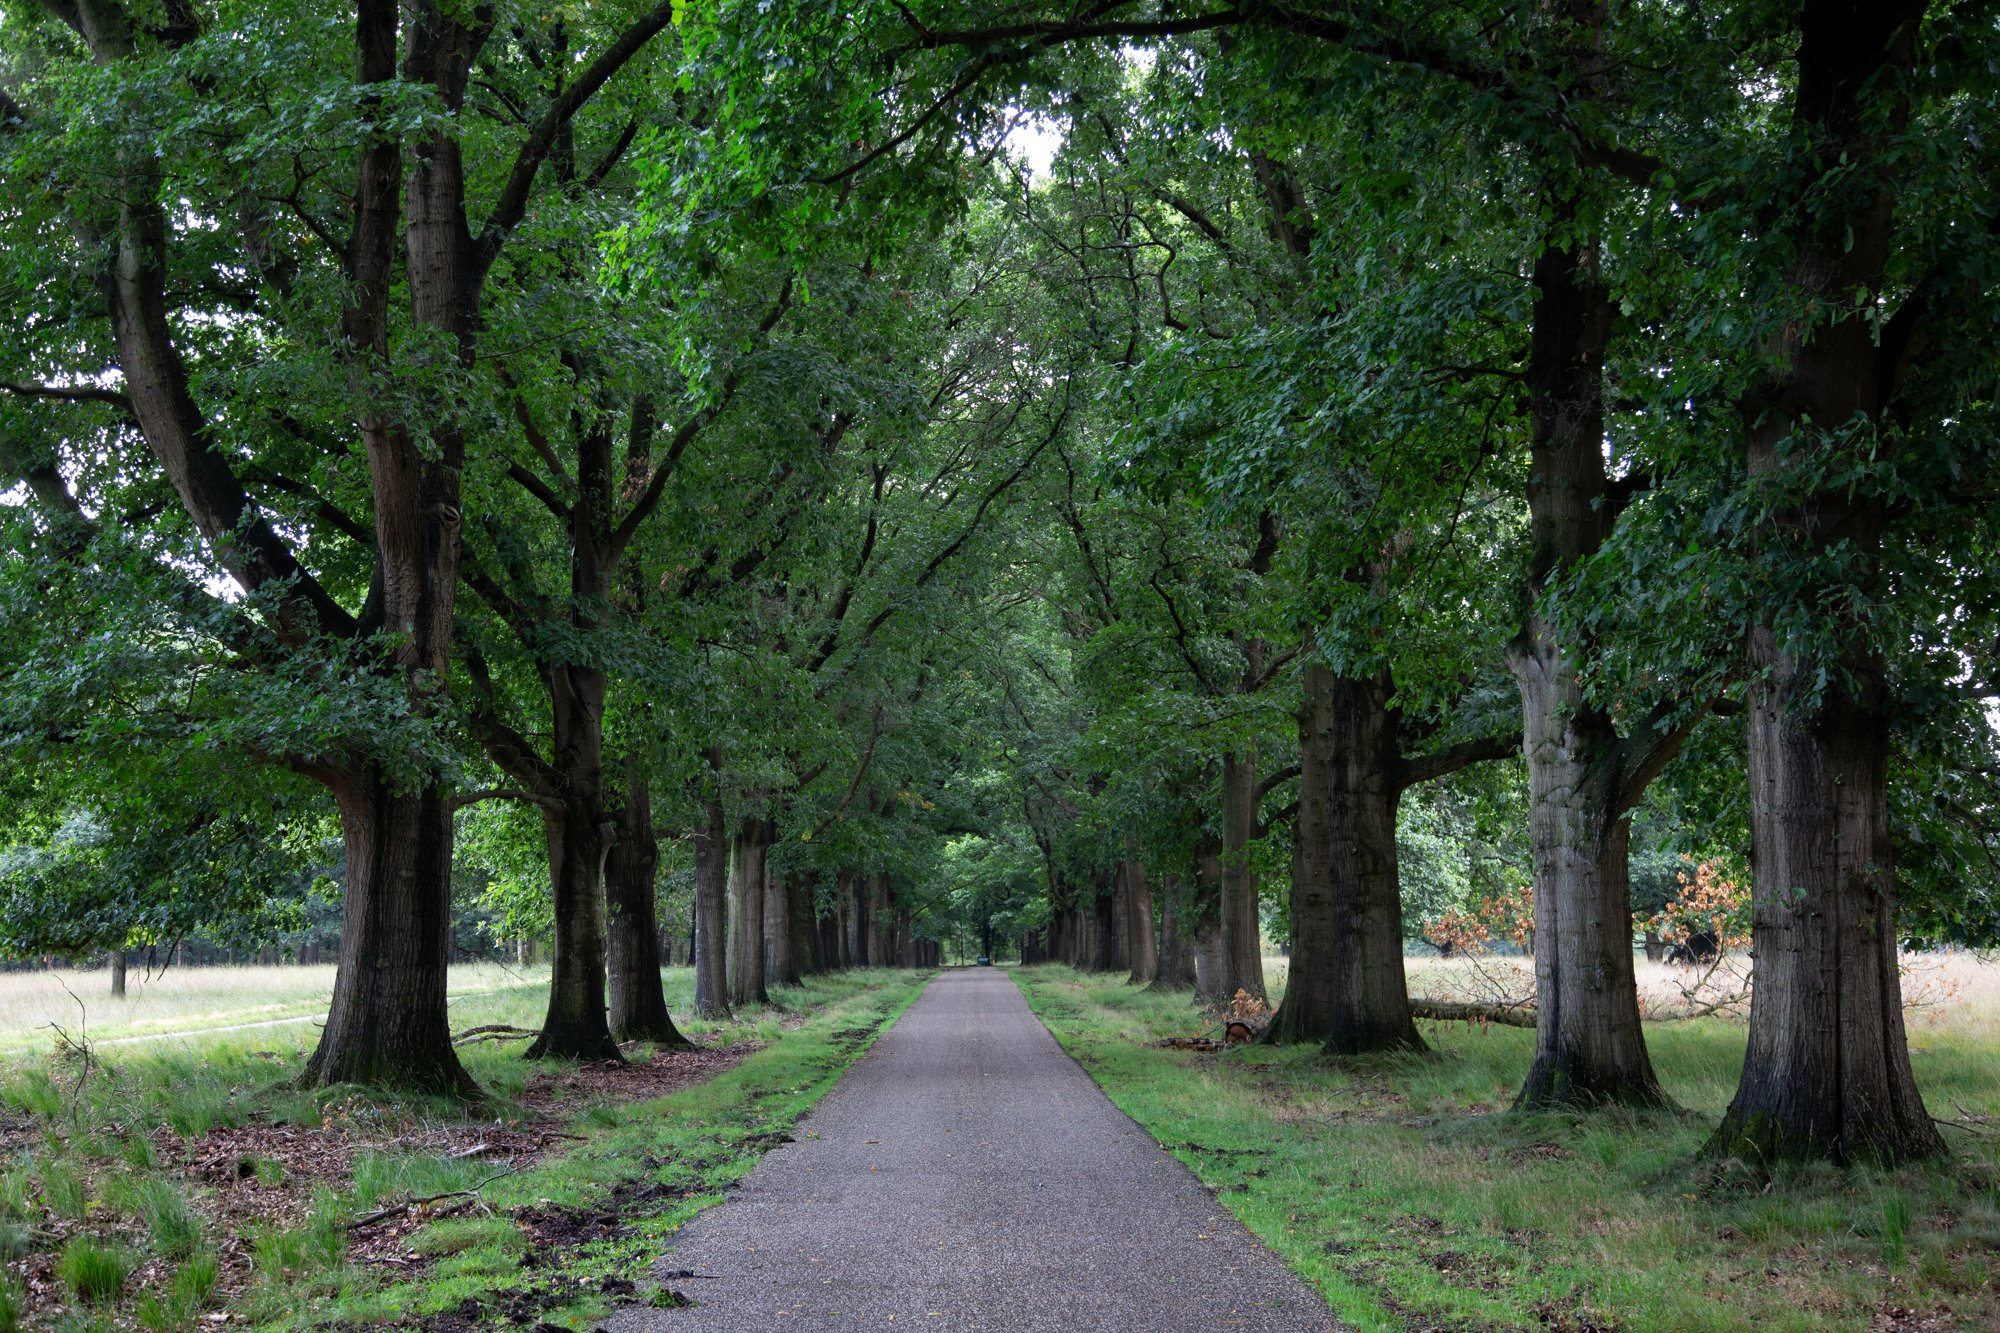 Green lush forest of Nationaal Park De Hoge Veluwe